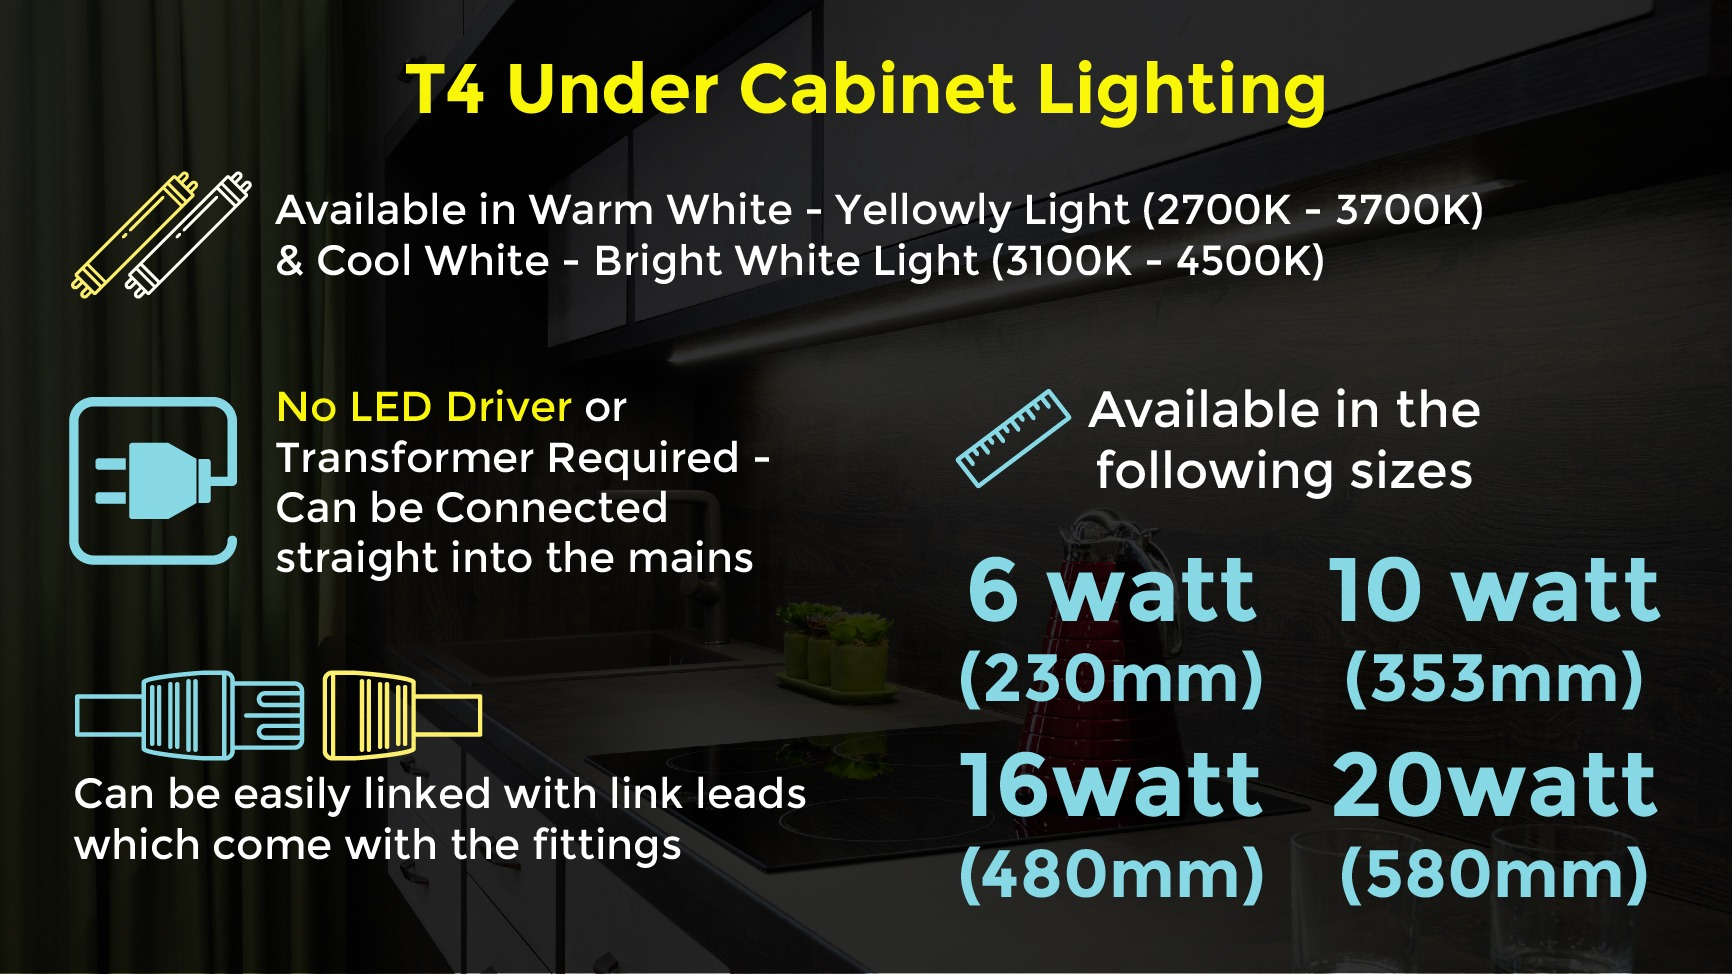 T4 Under Cabinet Lighting